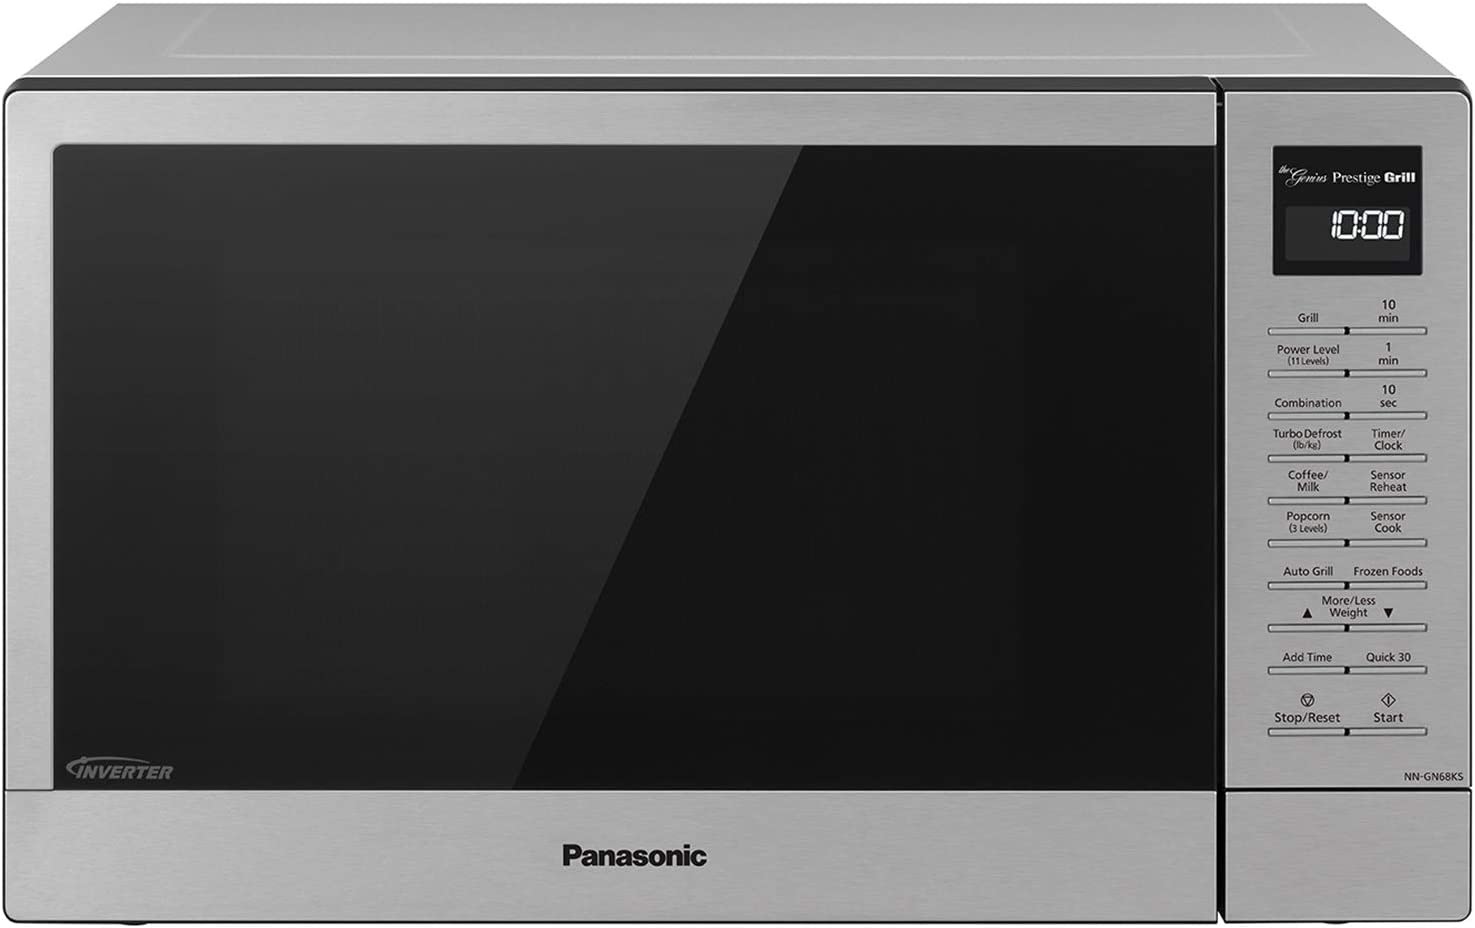 Panasonic Countertop Microwave Oven with FlashXpress Broiler, Genius Sensor Cooking, Popcorn Button and 1000W of Cooking Power - NN-GN68KS – 1.1 cu. ft (Stainless Steel)